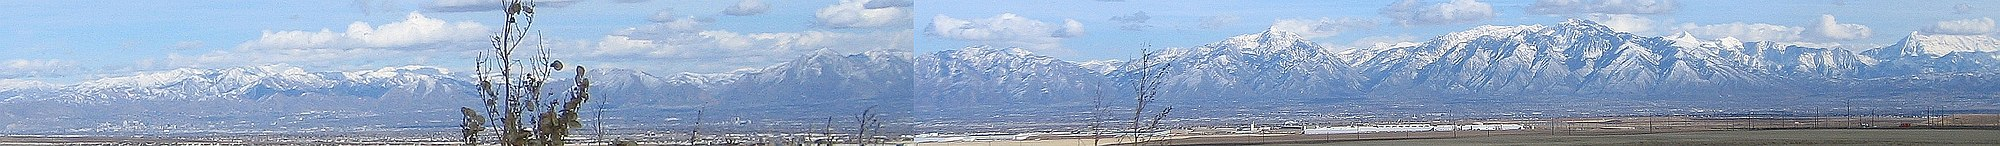 The Wasatch Range behind Salt Lake City